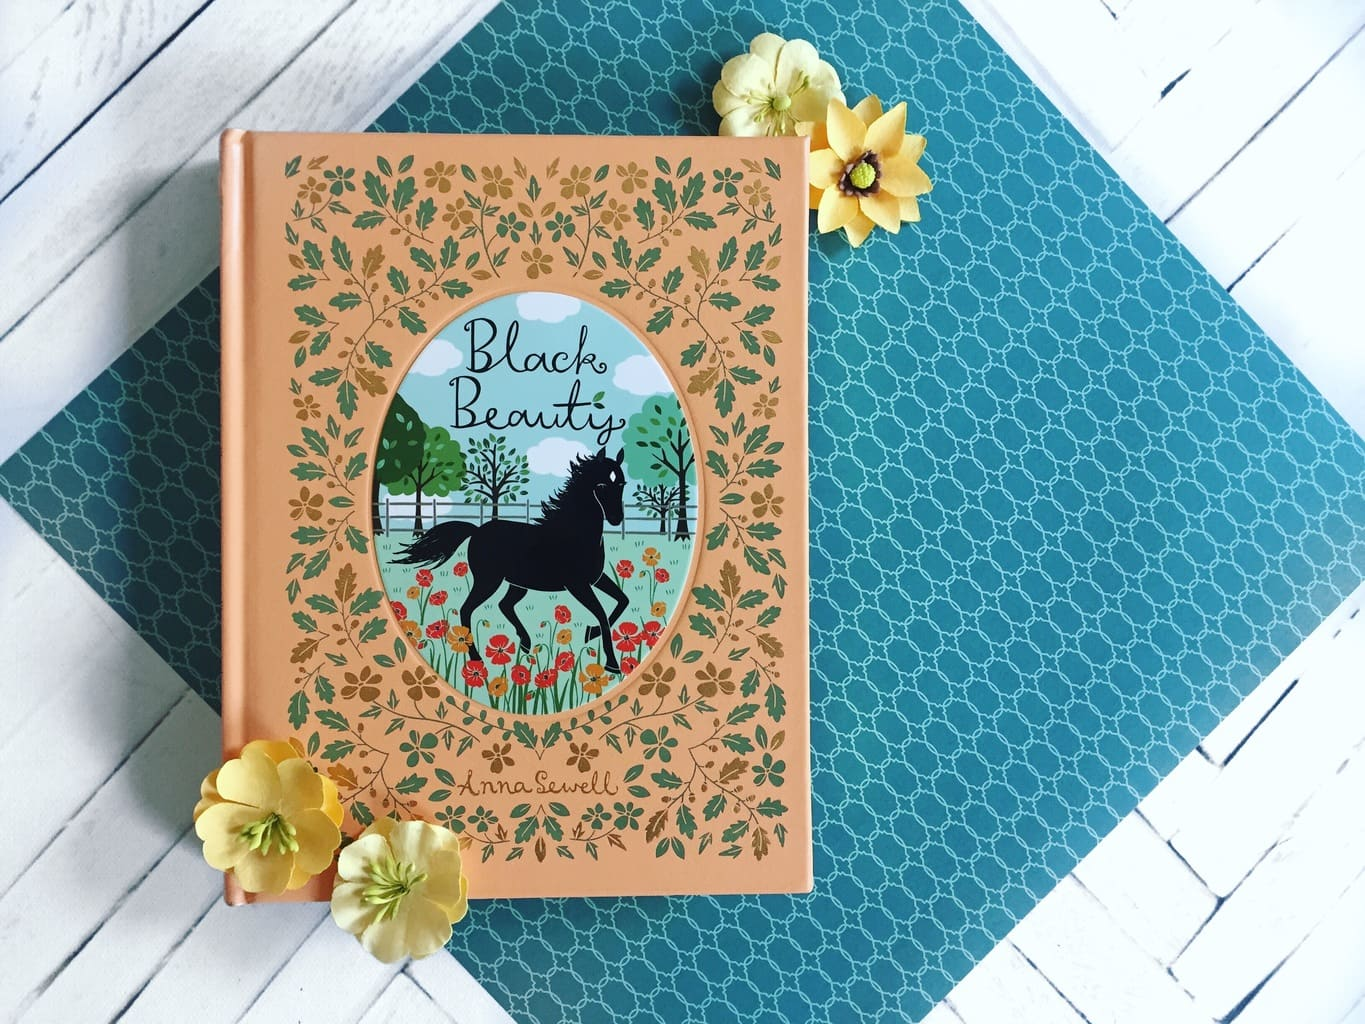 black beauty review